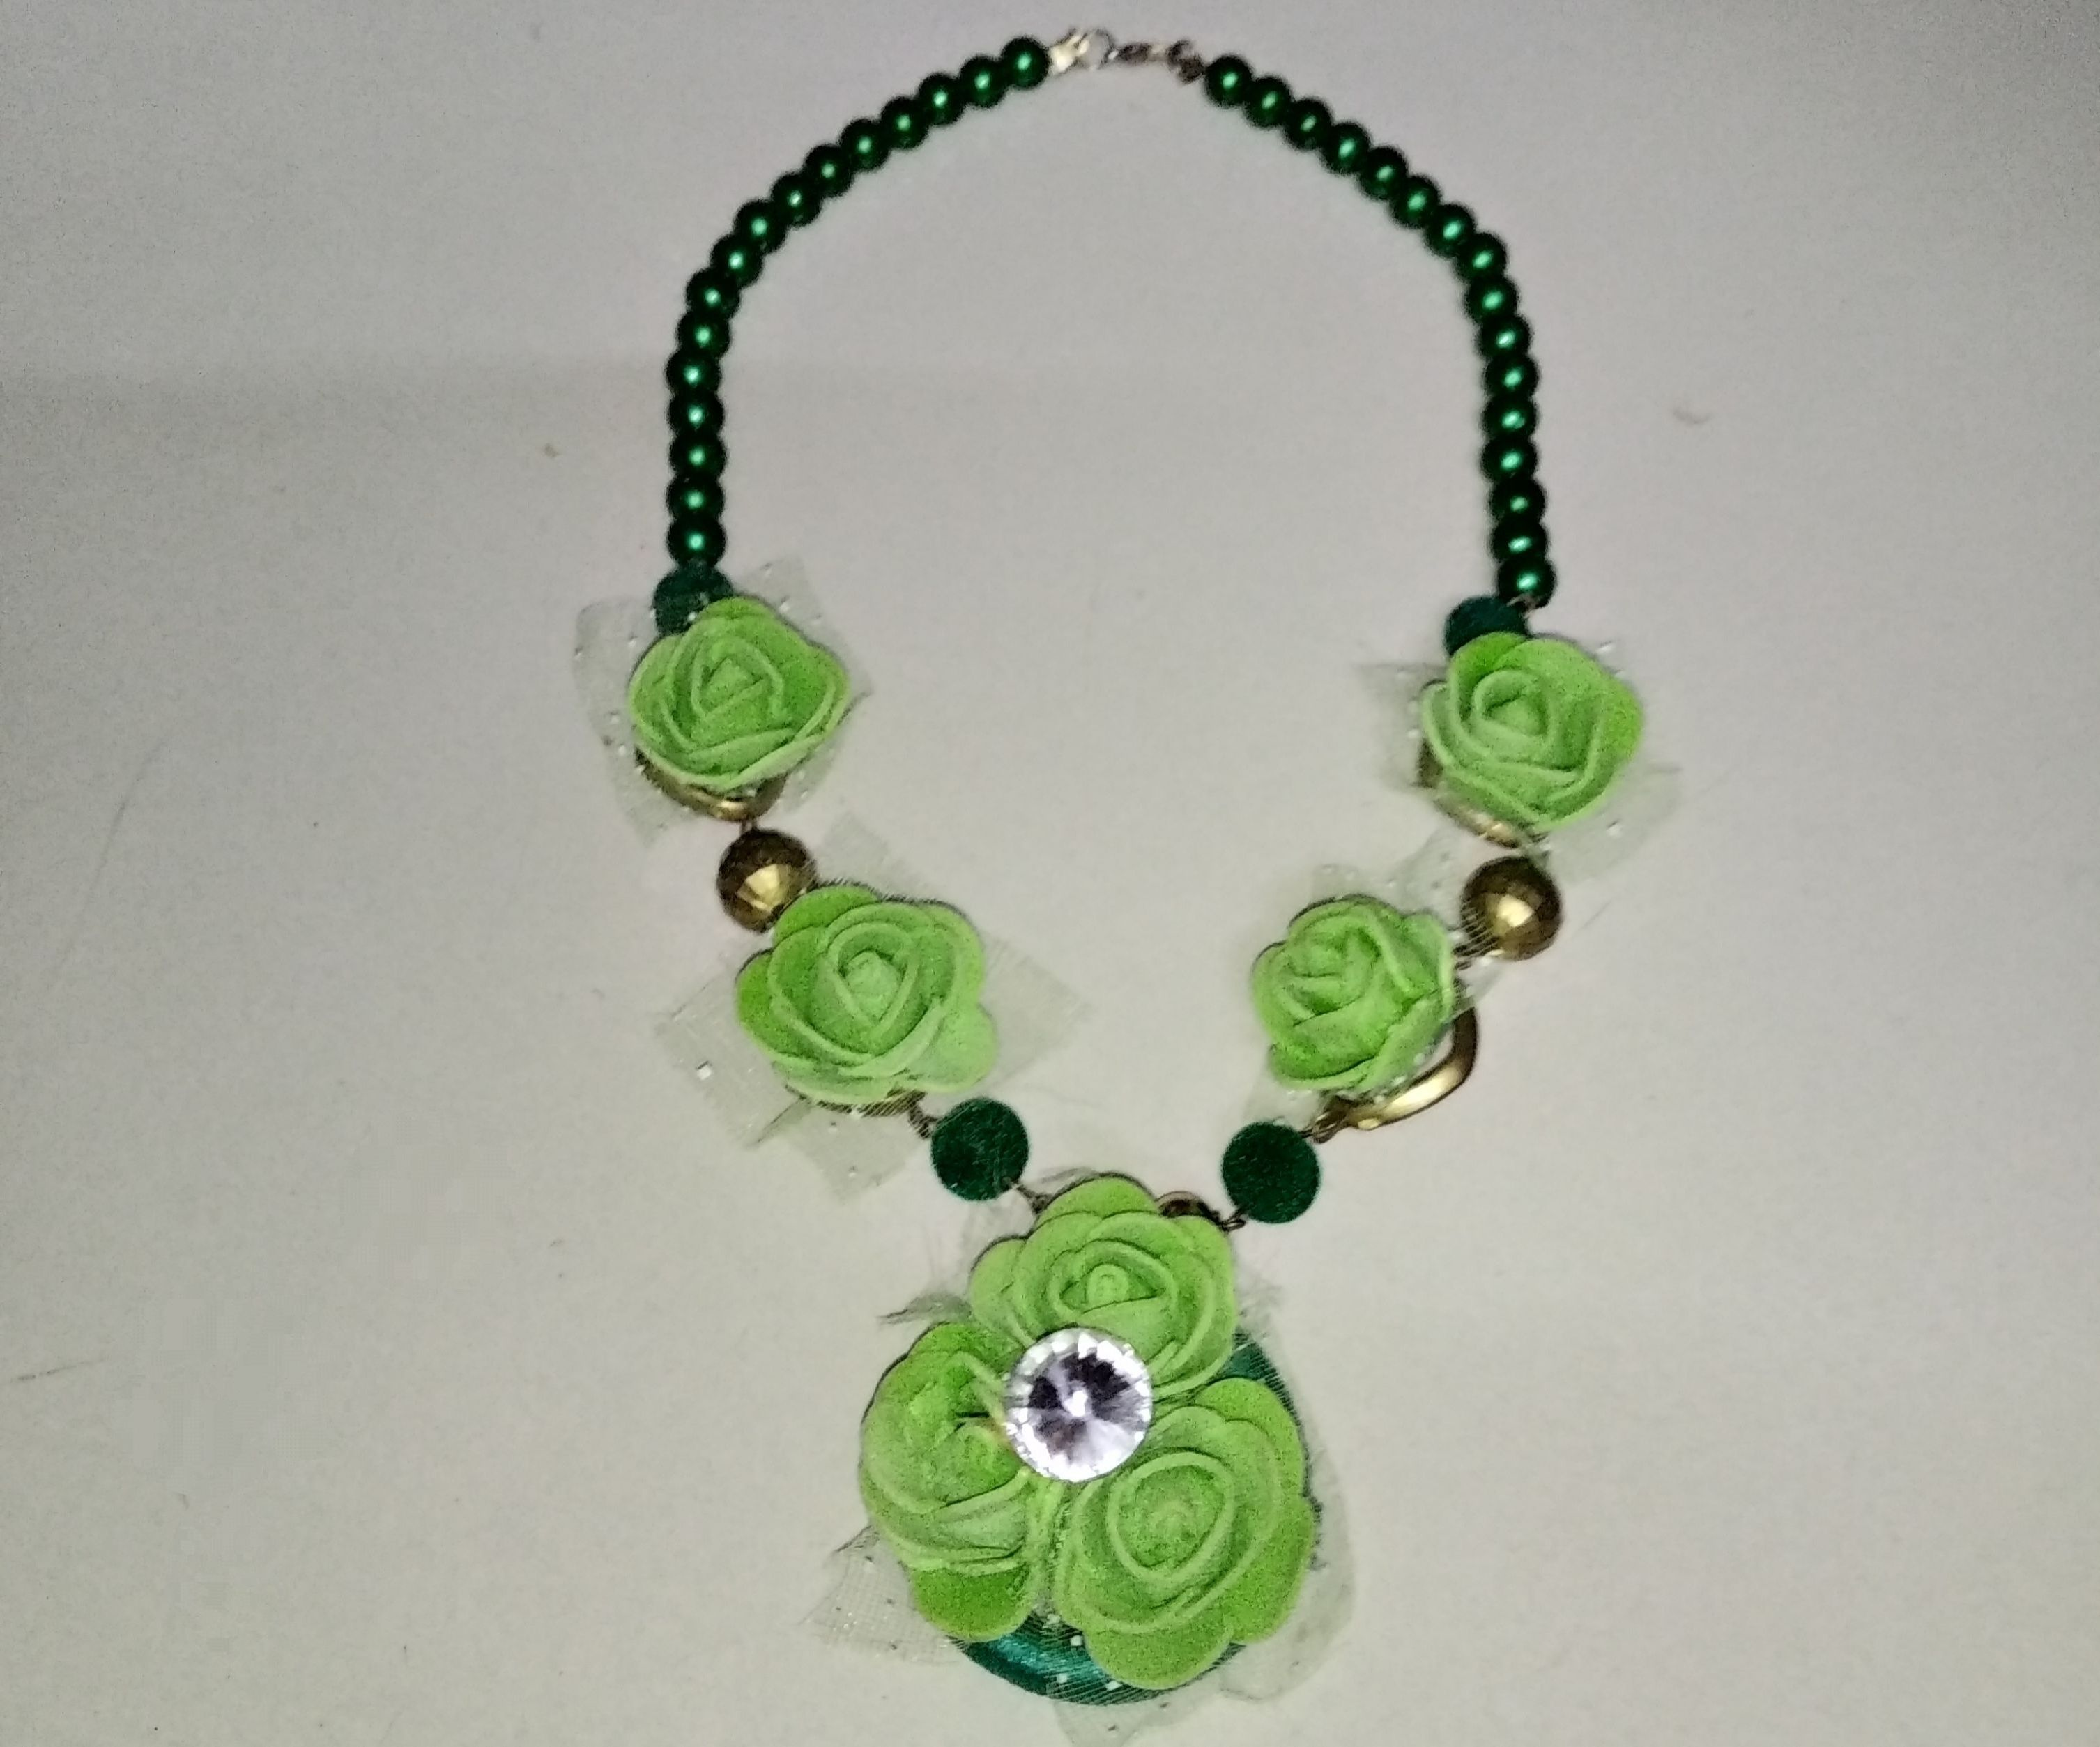 Dazzling Green Beads Necklace and Earrings